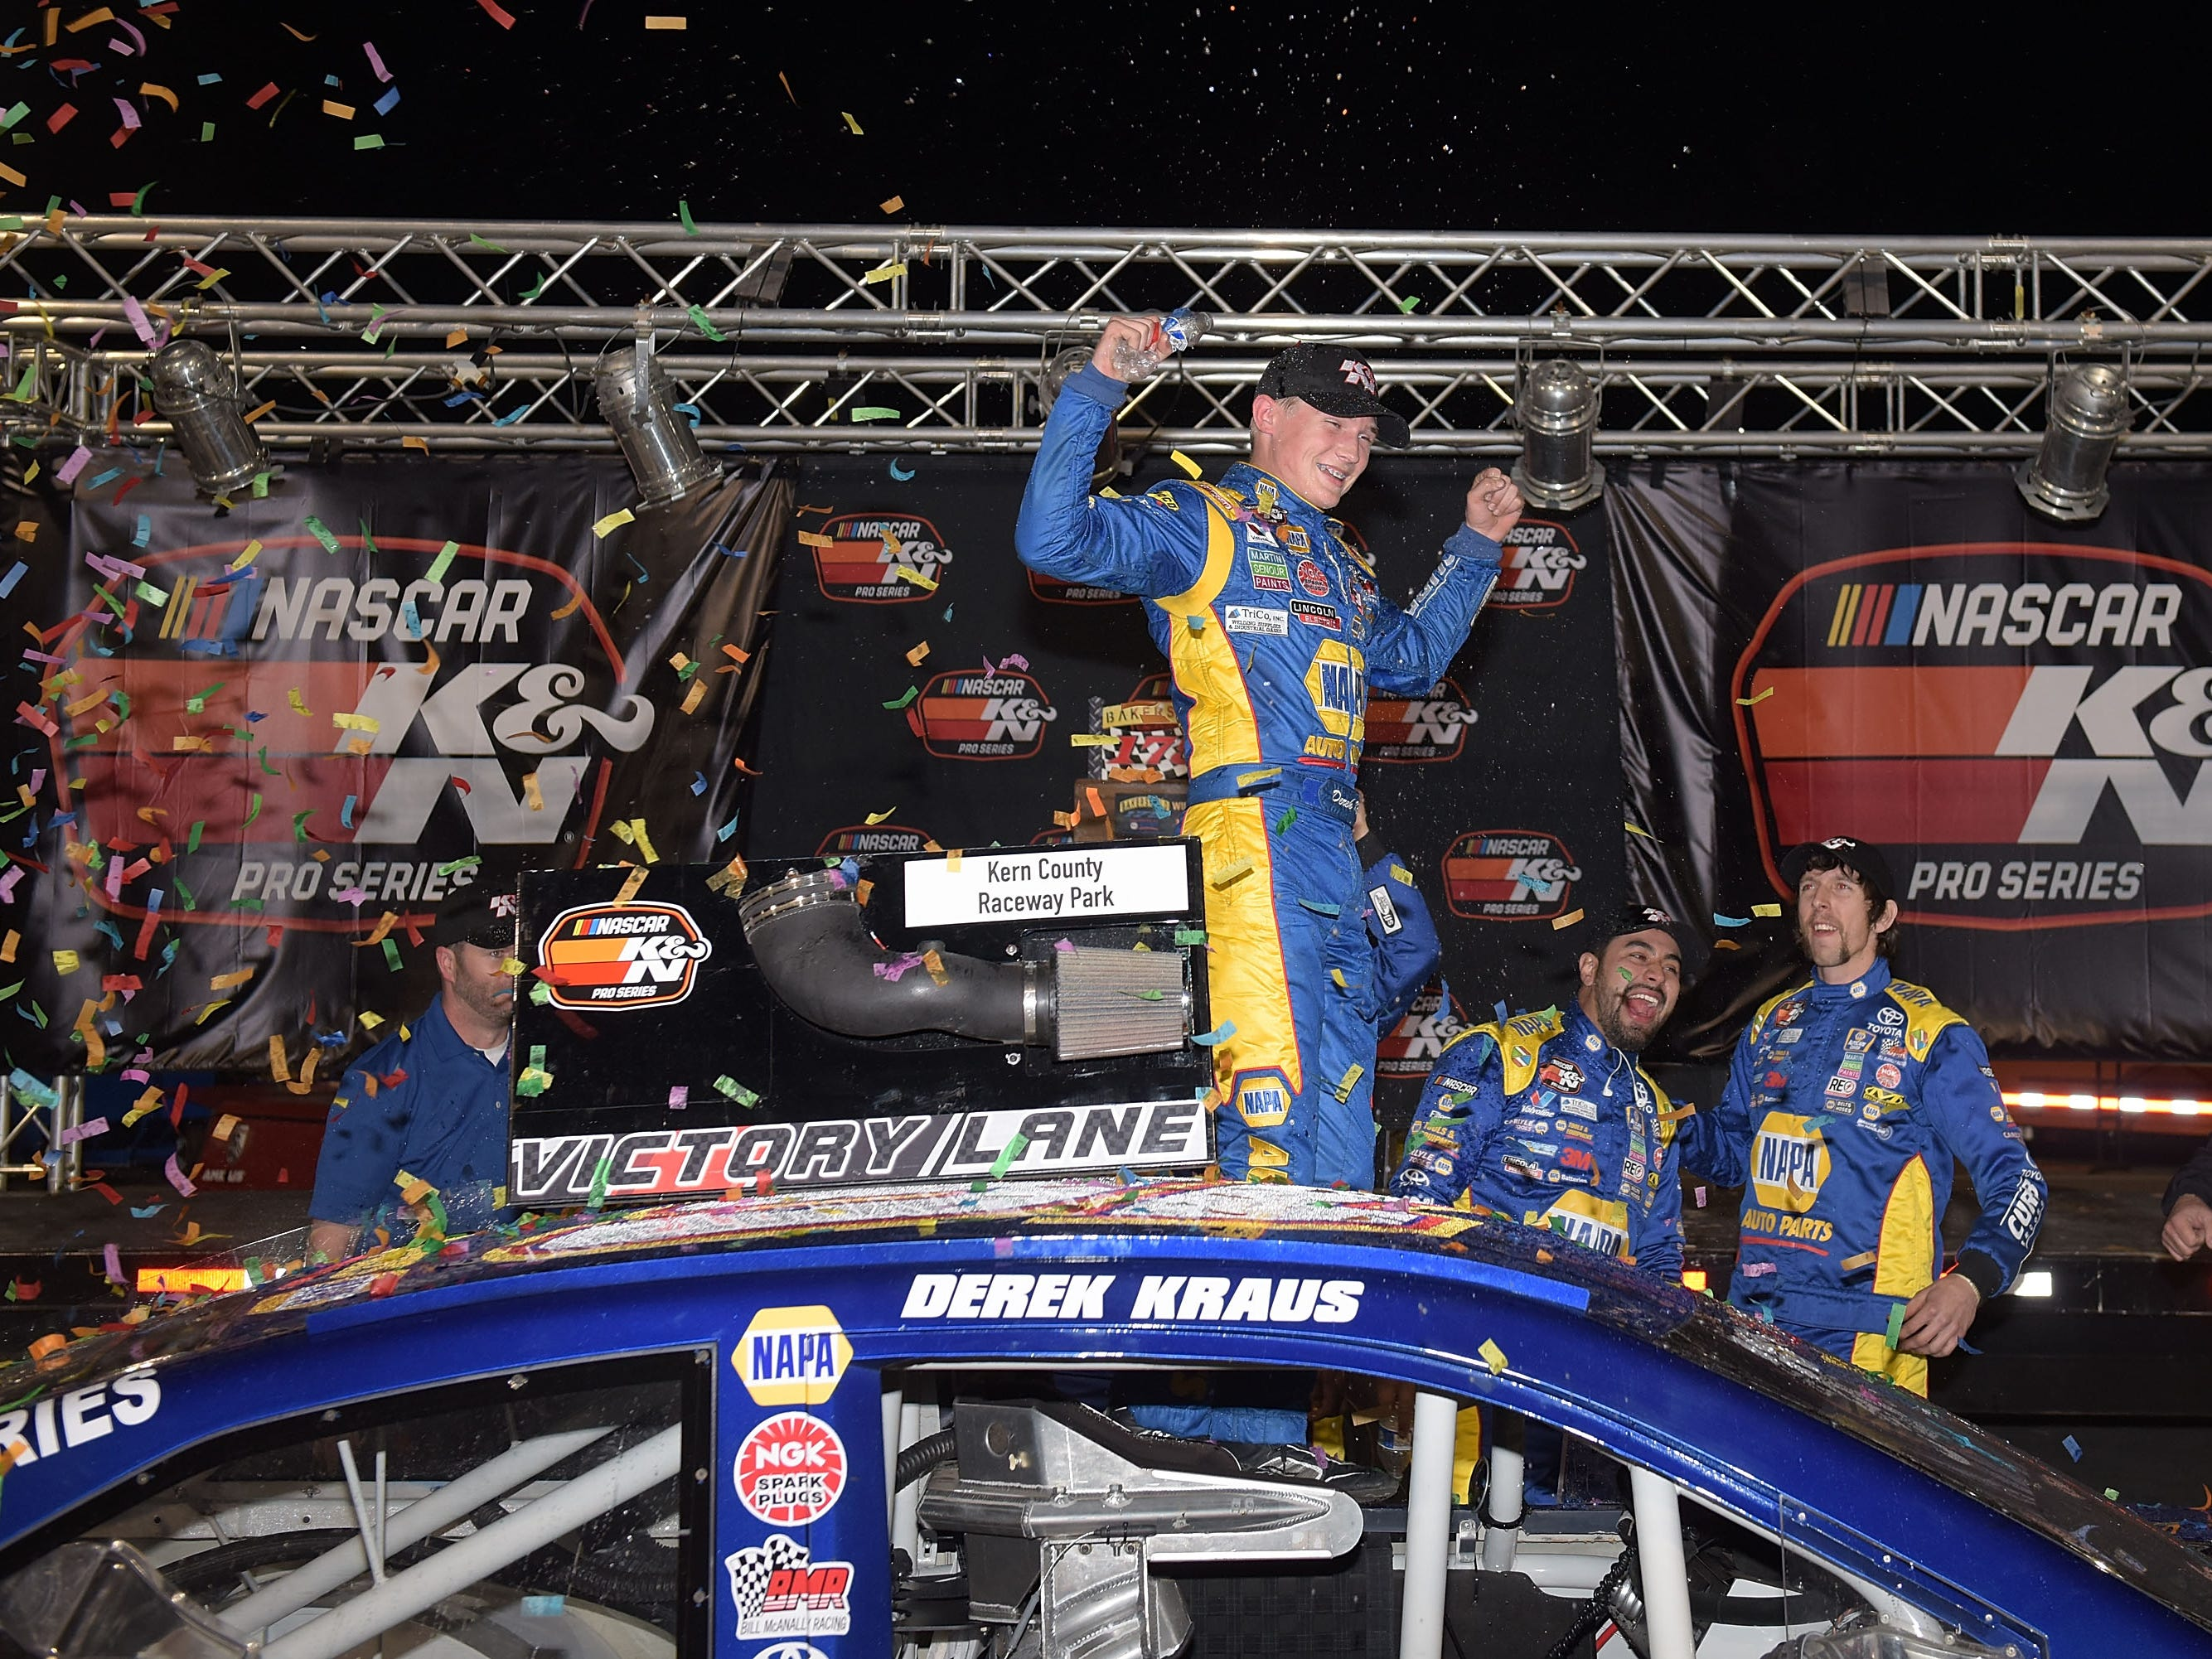 BAKERSFIELD, CA - MARCH 15:  Derek Kraus, driver of the #16 NAPA Auto Parts / Curb Records Toyota, celebrates in victory lane after winning the NASCAR K&N Pro Series West Bakersfield 175 presented by NAPA Auto Parts at Kern County Raceway Park on March 15, 2018 in Bakersfield, California.  (Photo by Jonathan Moore/Getty Images for NASCAR)